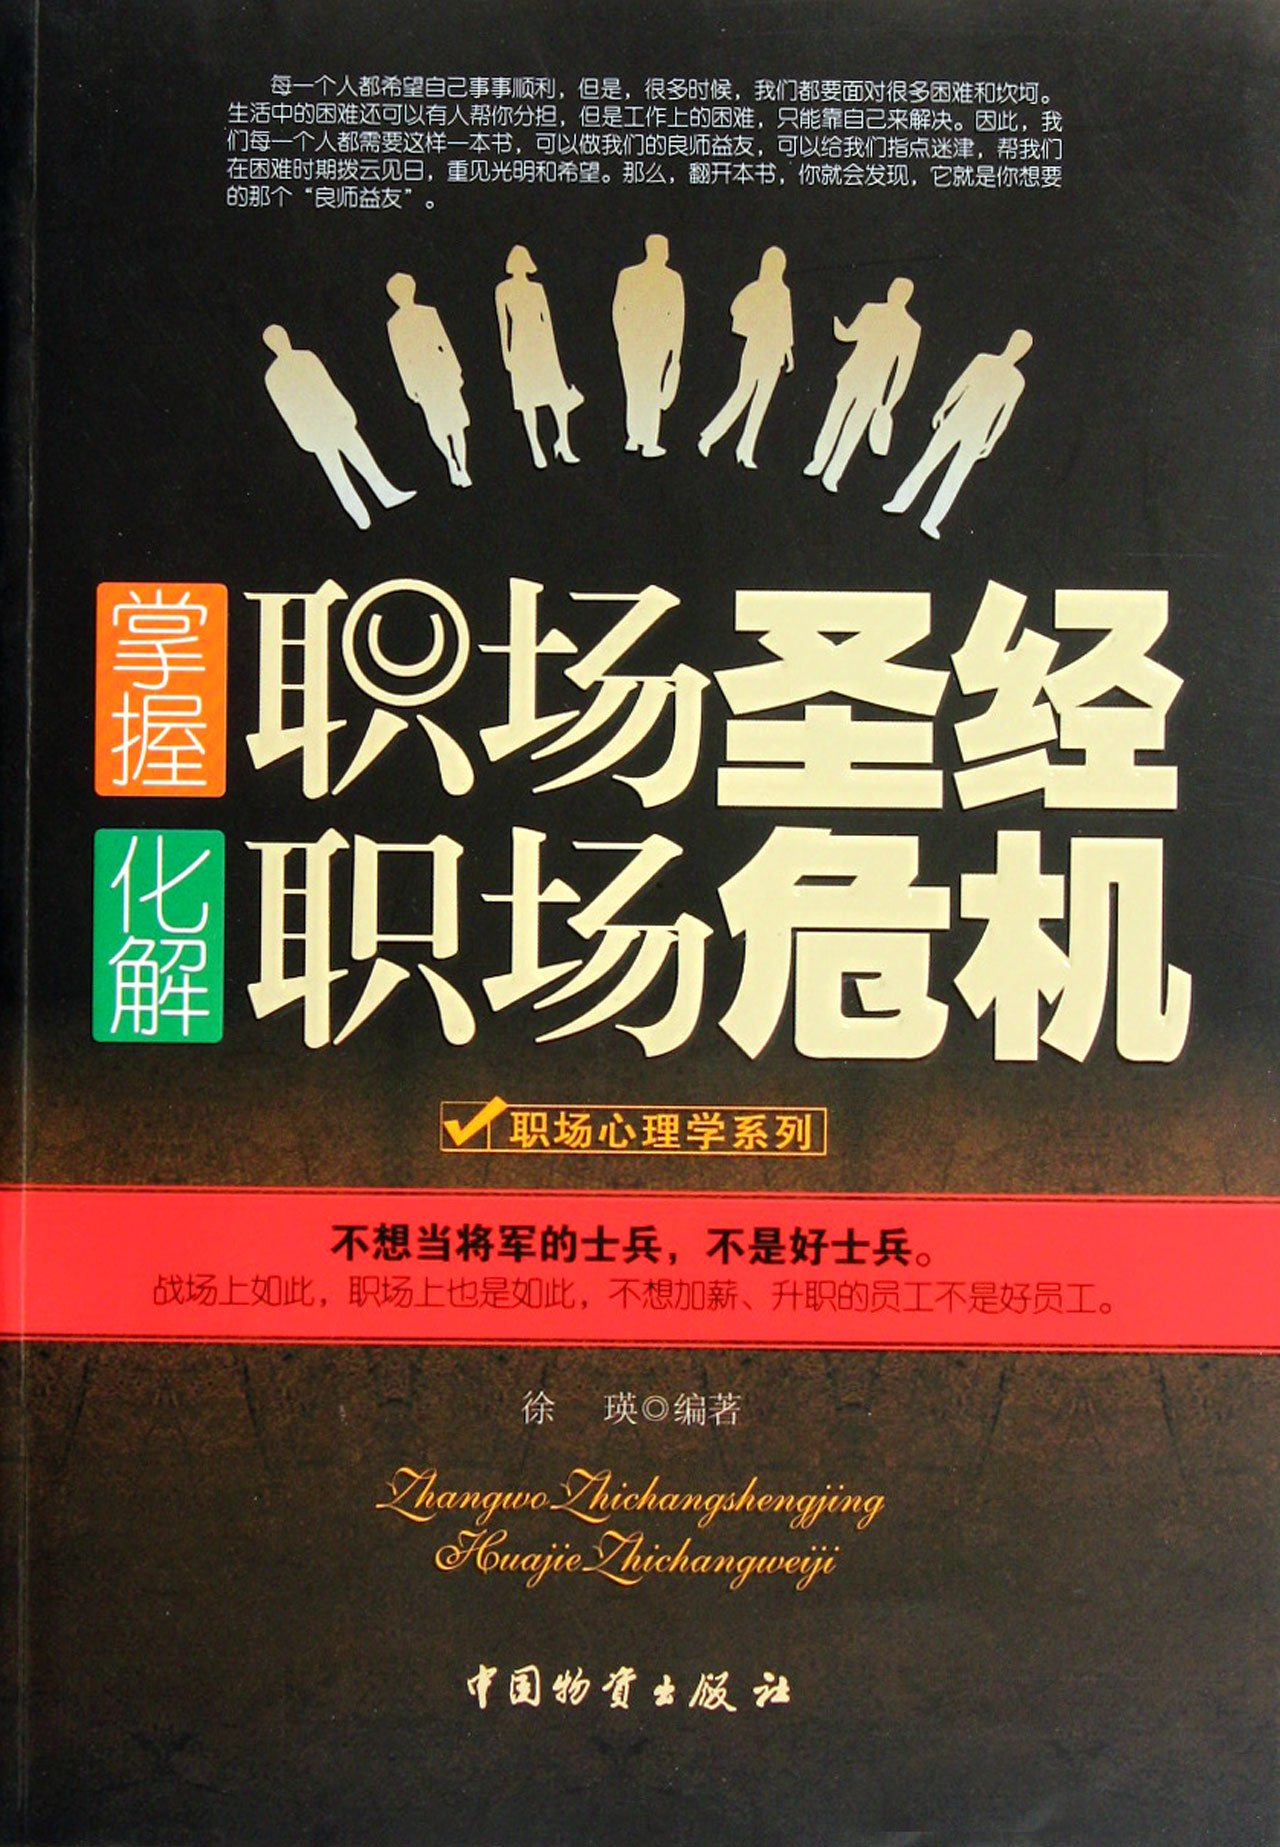 Workplace Bible, Solving Problems at Workplace (Chinese Edition) PDF